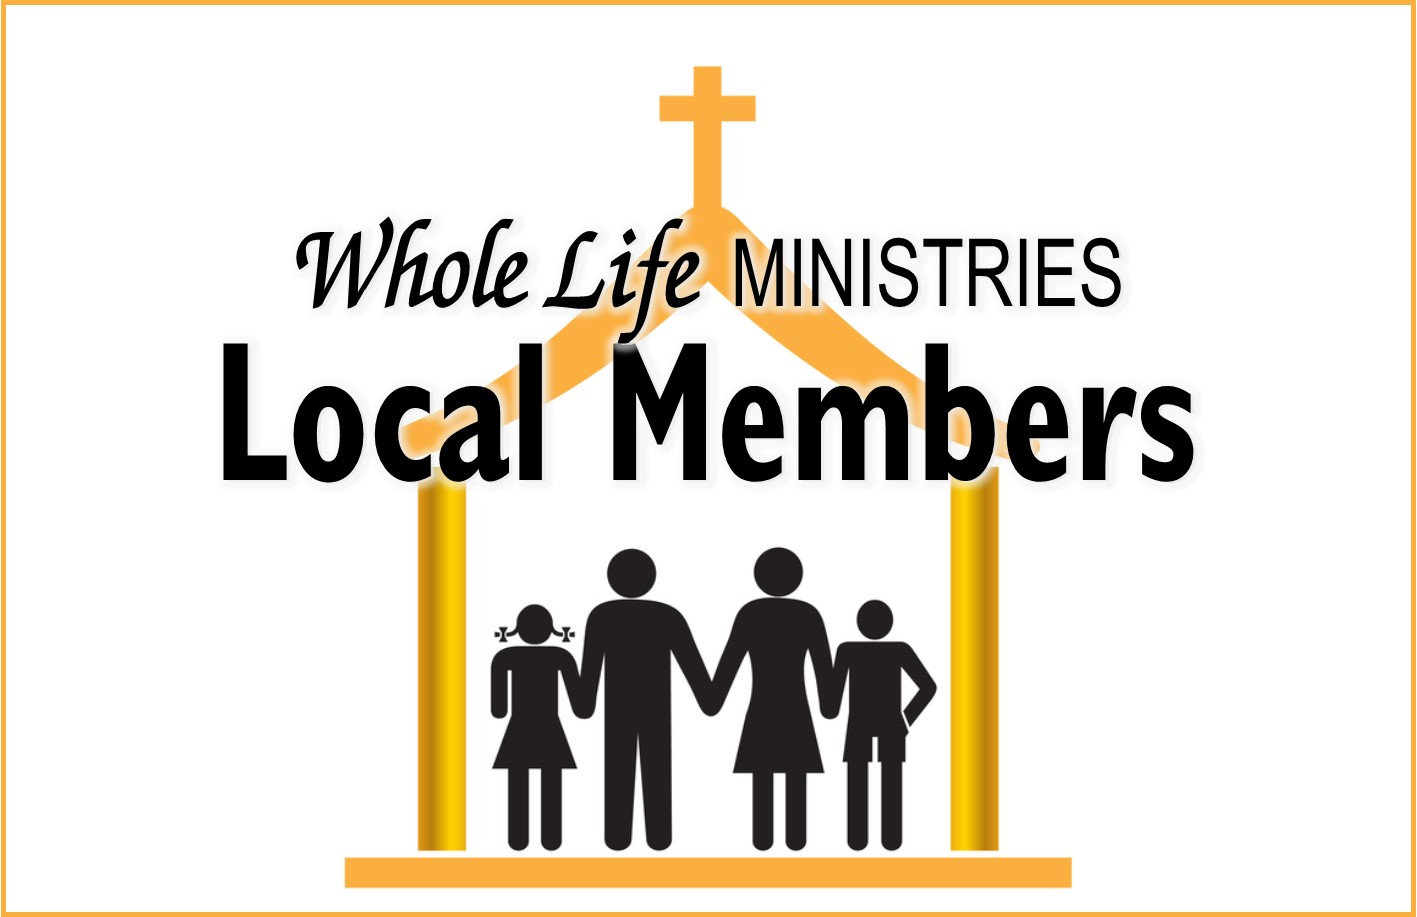 Whole Life Ministries Local Members